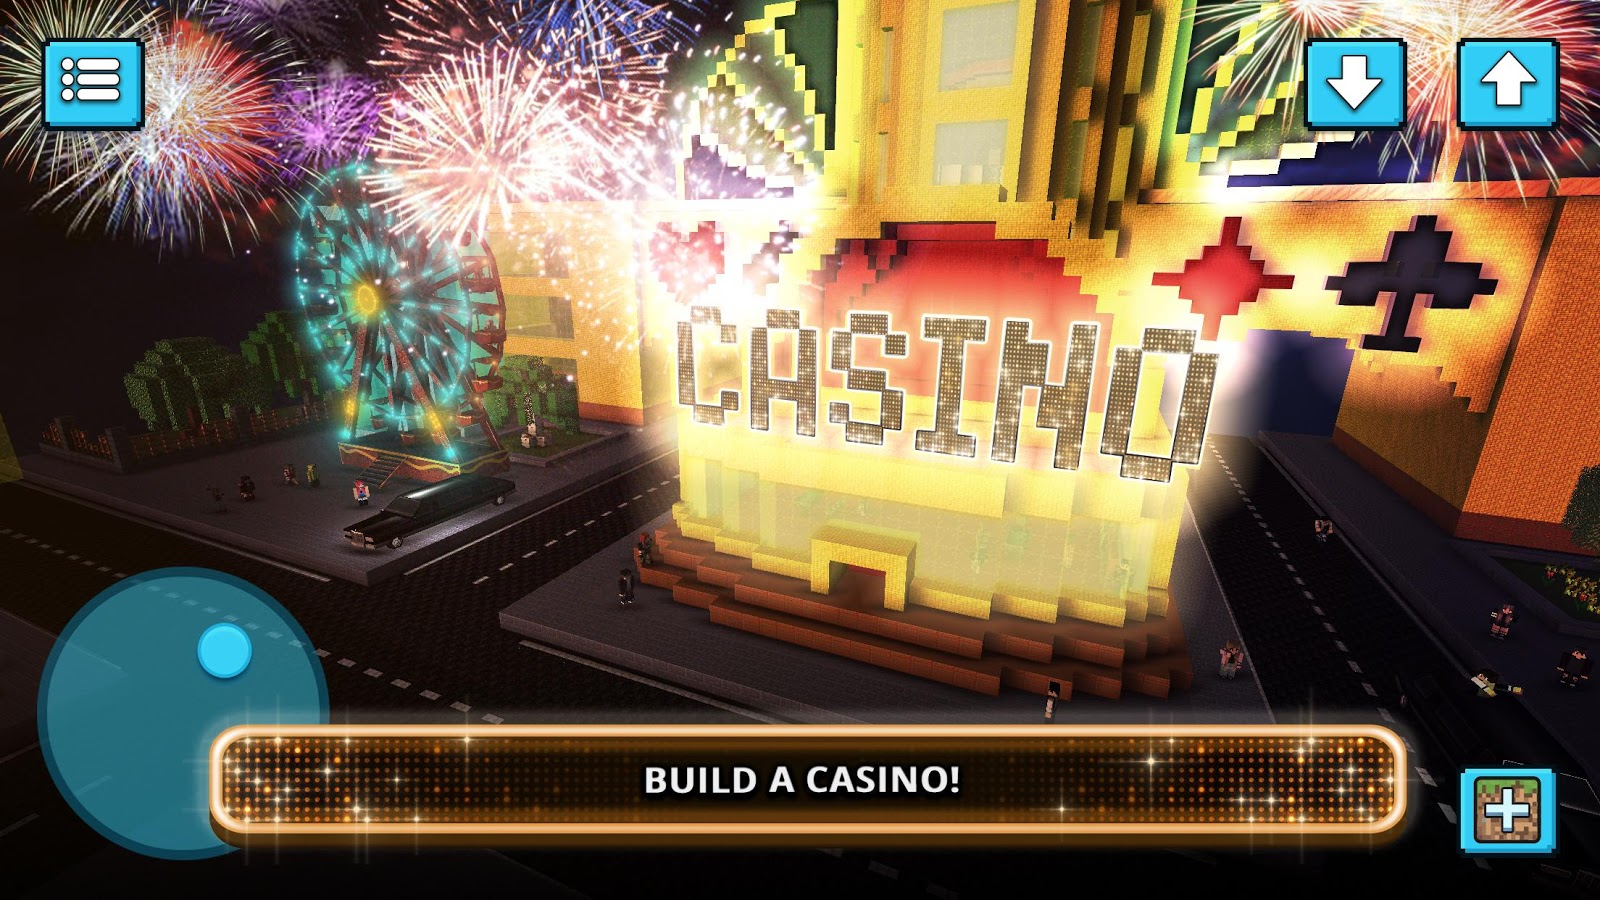 Vegas craft building crafting casino games android for Crafting and building app store